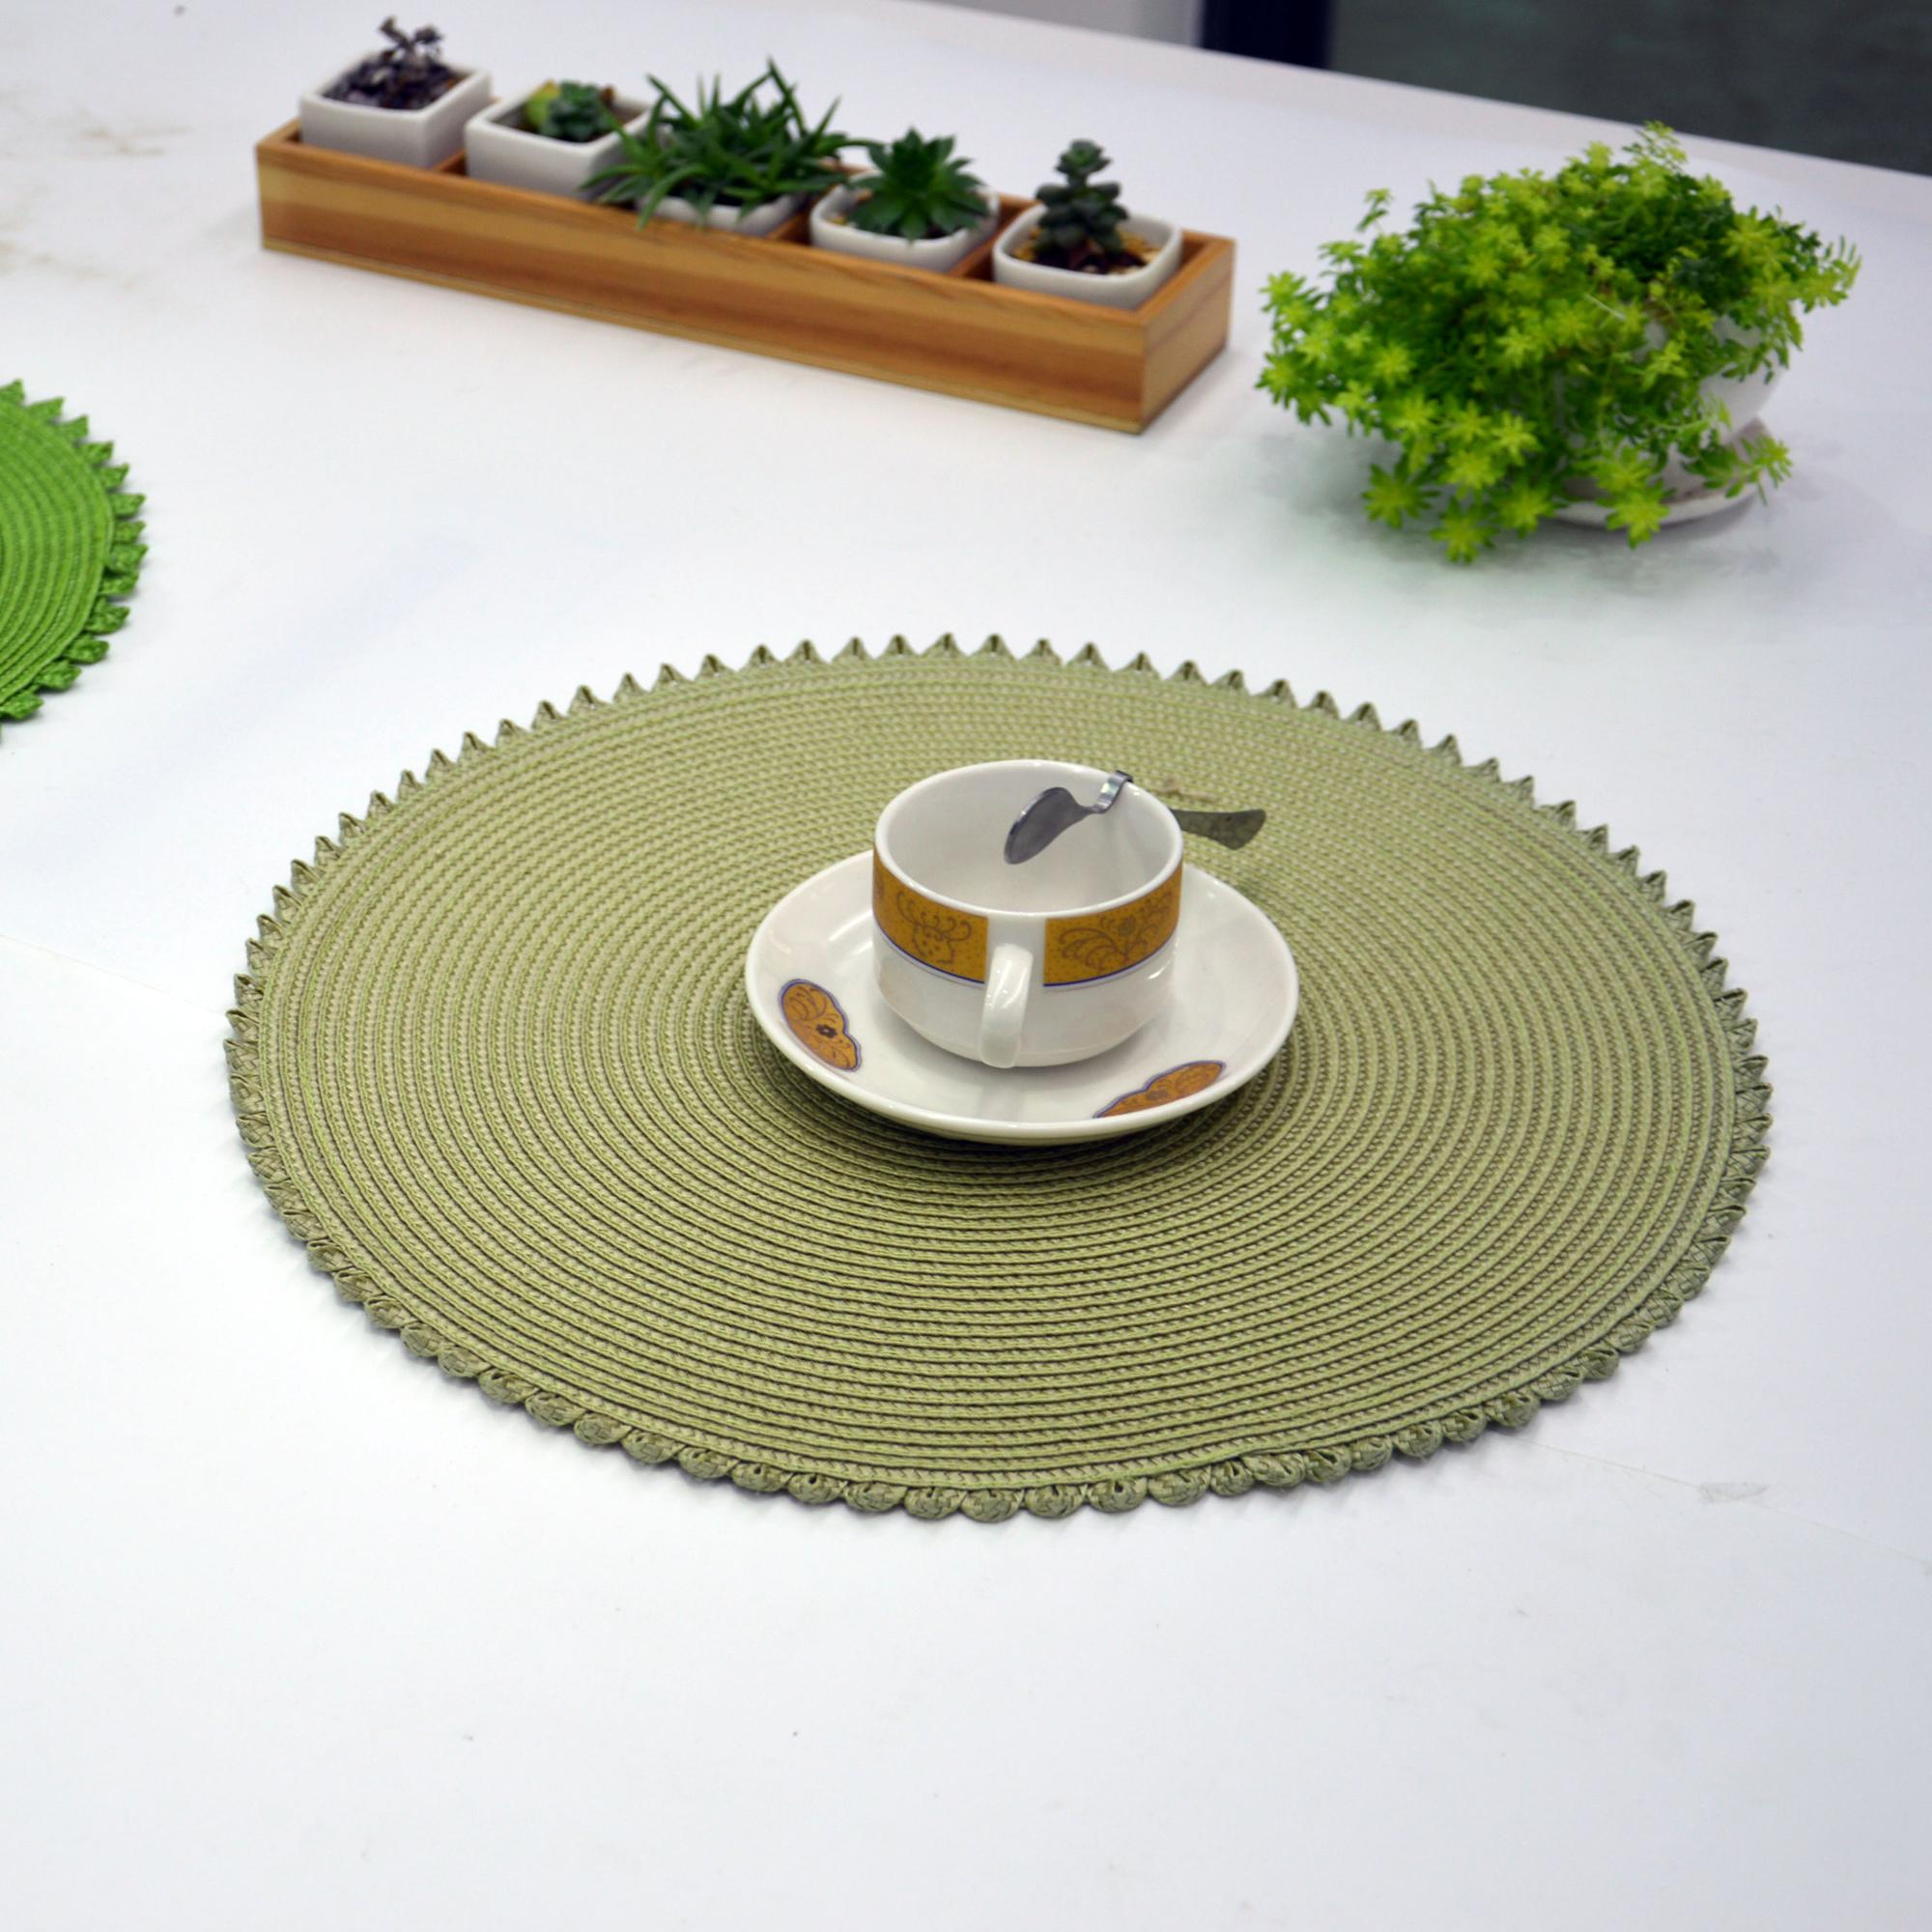 Hot food heat protection silicone esd pvc under dining table mat,pvc table mat